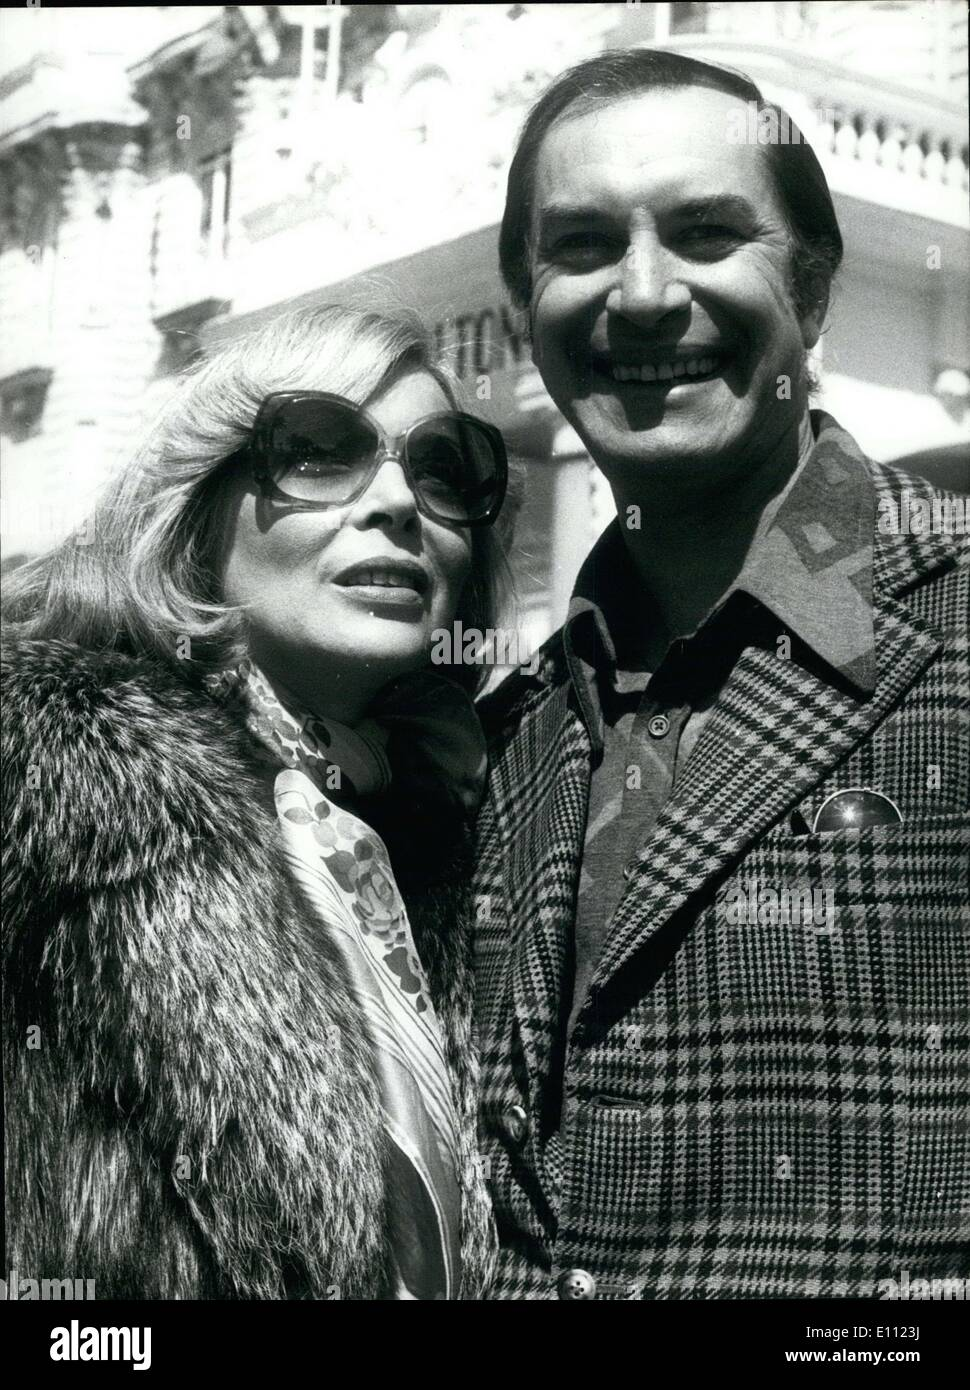 Apr. 14, 1975 - While waiting to film their space advetures in another much-anticipated TV series, Martin Landau and Barbara Bain, the couple in ''Mission Impossible'' who are partners on the TV ad married in real life, are spending a vacation in Cannes with their children. Martin Landau and Barbara Bain are the heros of ''Space 1999,'' a TV series with 24 episodes telling the story of a group of men and women who live in a space station on the moon. In fear of radioactivity, no one wants to welcome, no one want to welcome the space travelers - Stock Image